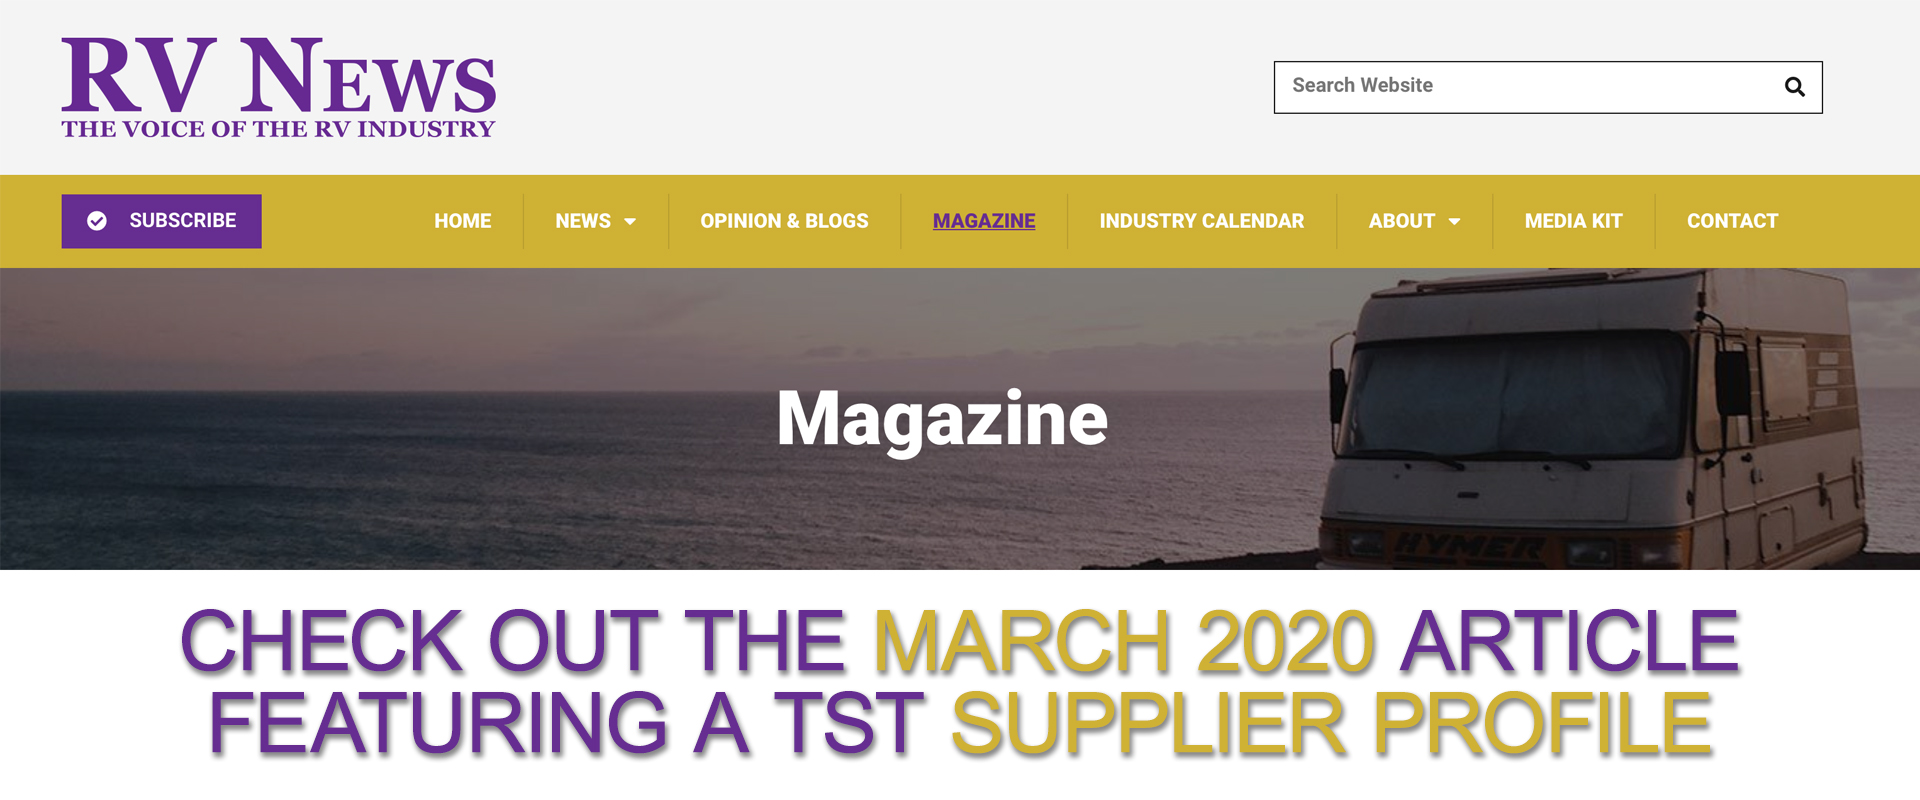 Check out the March 2020 RVNEWS TST Supplier Profile